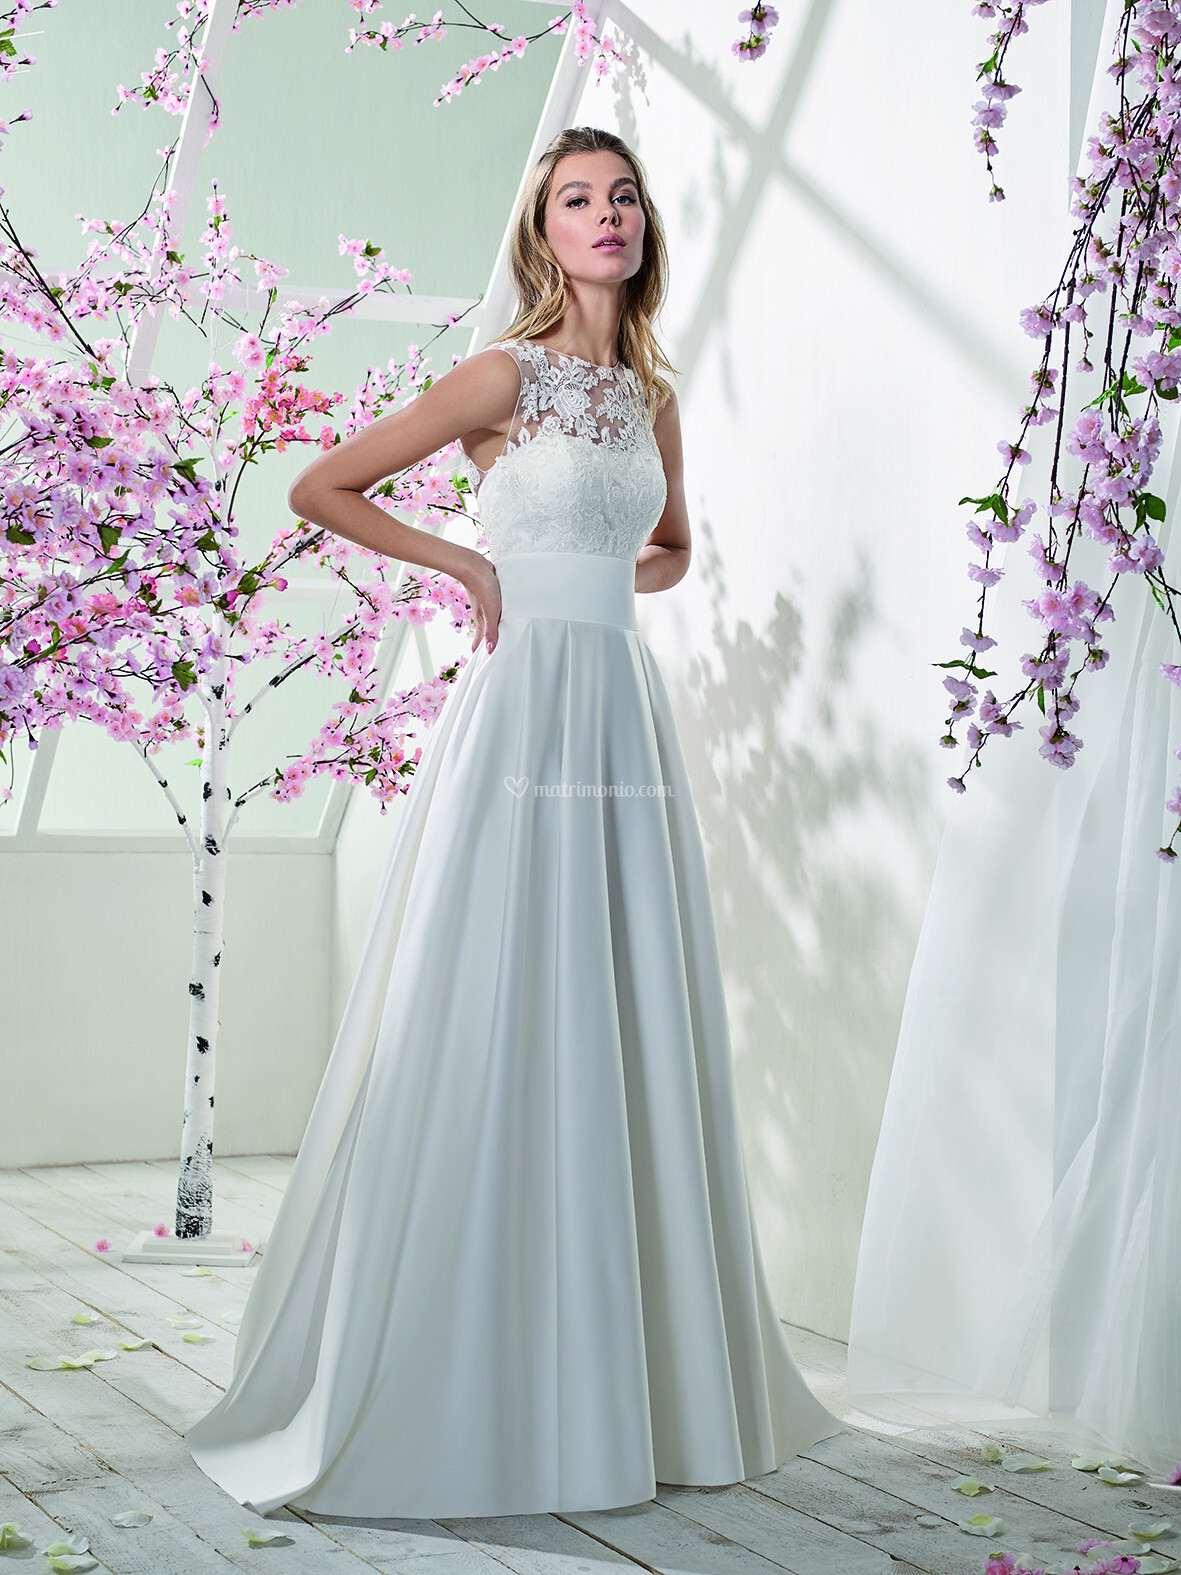 Vestiti Da Sposa For You.Abiti Da Sposa Di Just For You By The Sposa Group Italia Jfy 195